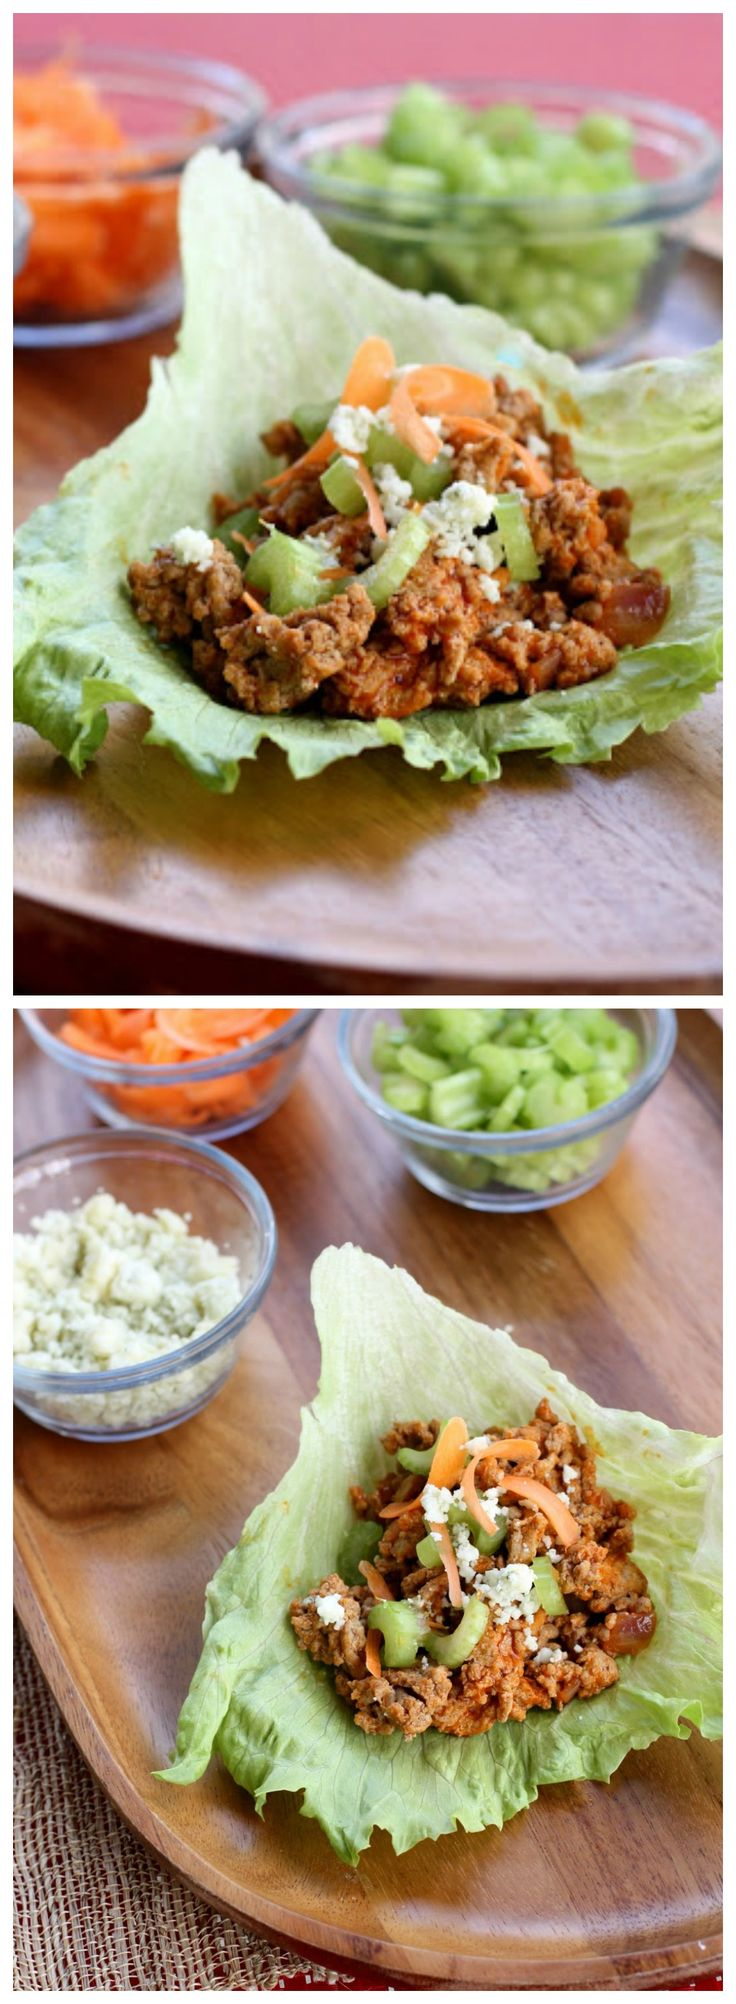 Buffalo Turkey Lettuce Wraps - One of our favorite healthy meals. the-girl-who-ate-everything.com